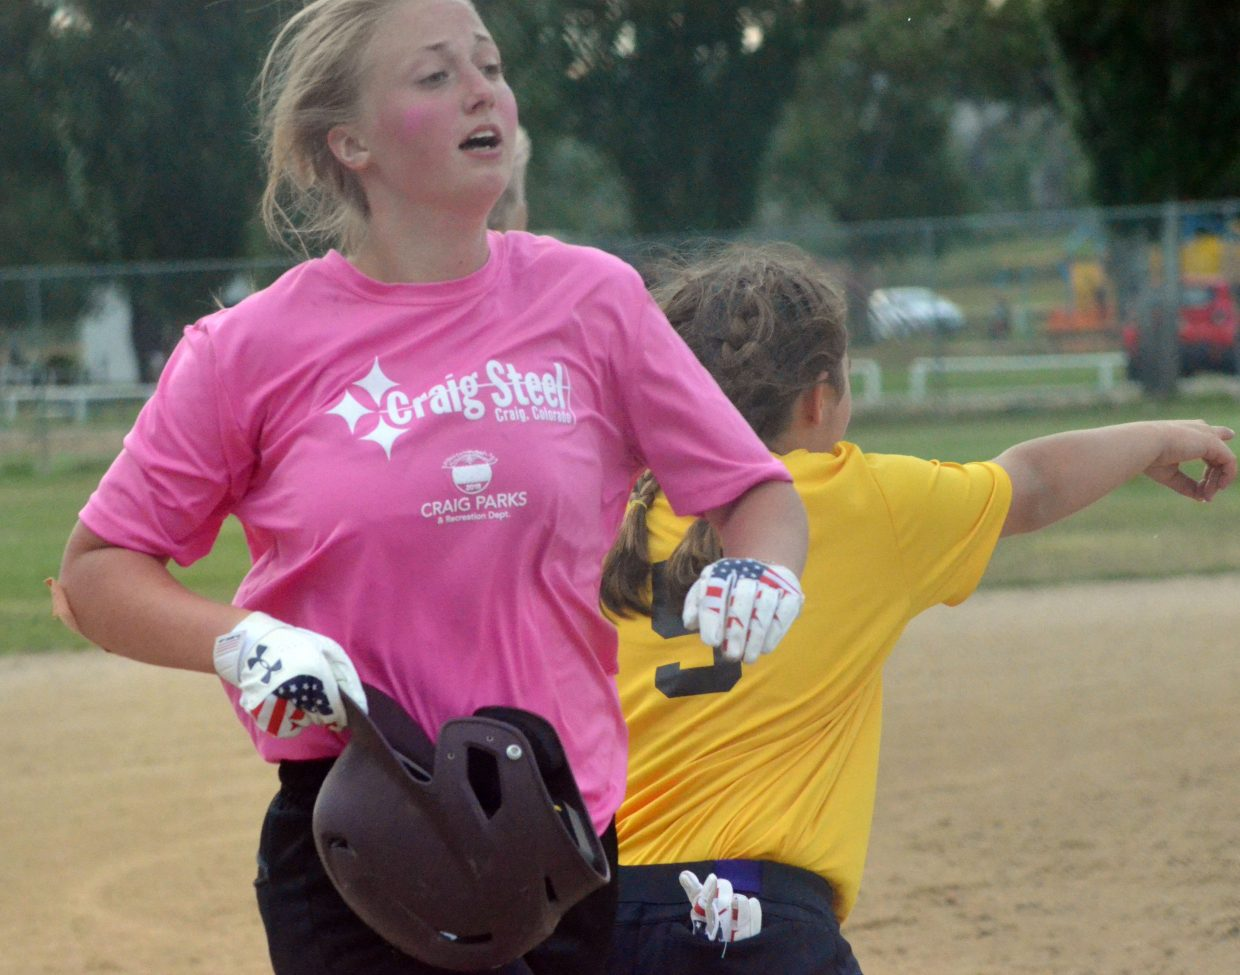 Craig Steel's Justice McMillan rips off her batting helmet as she crosses home plate.